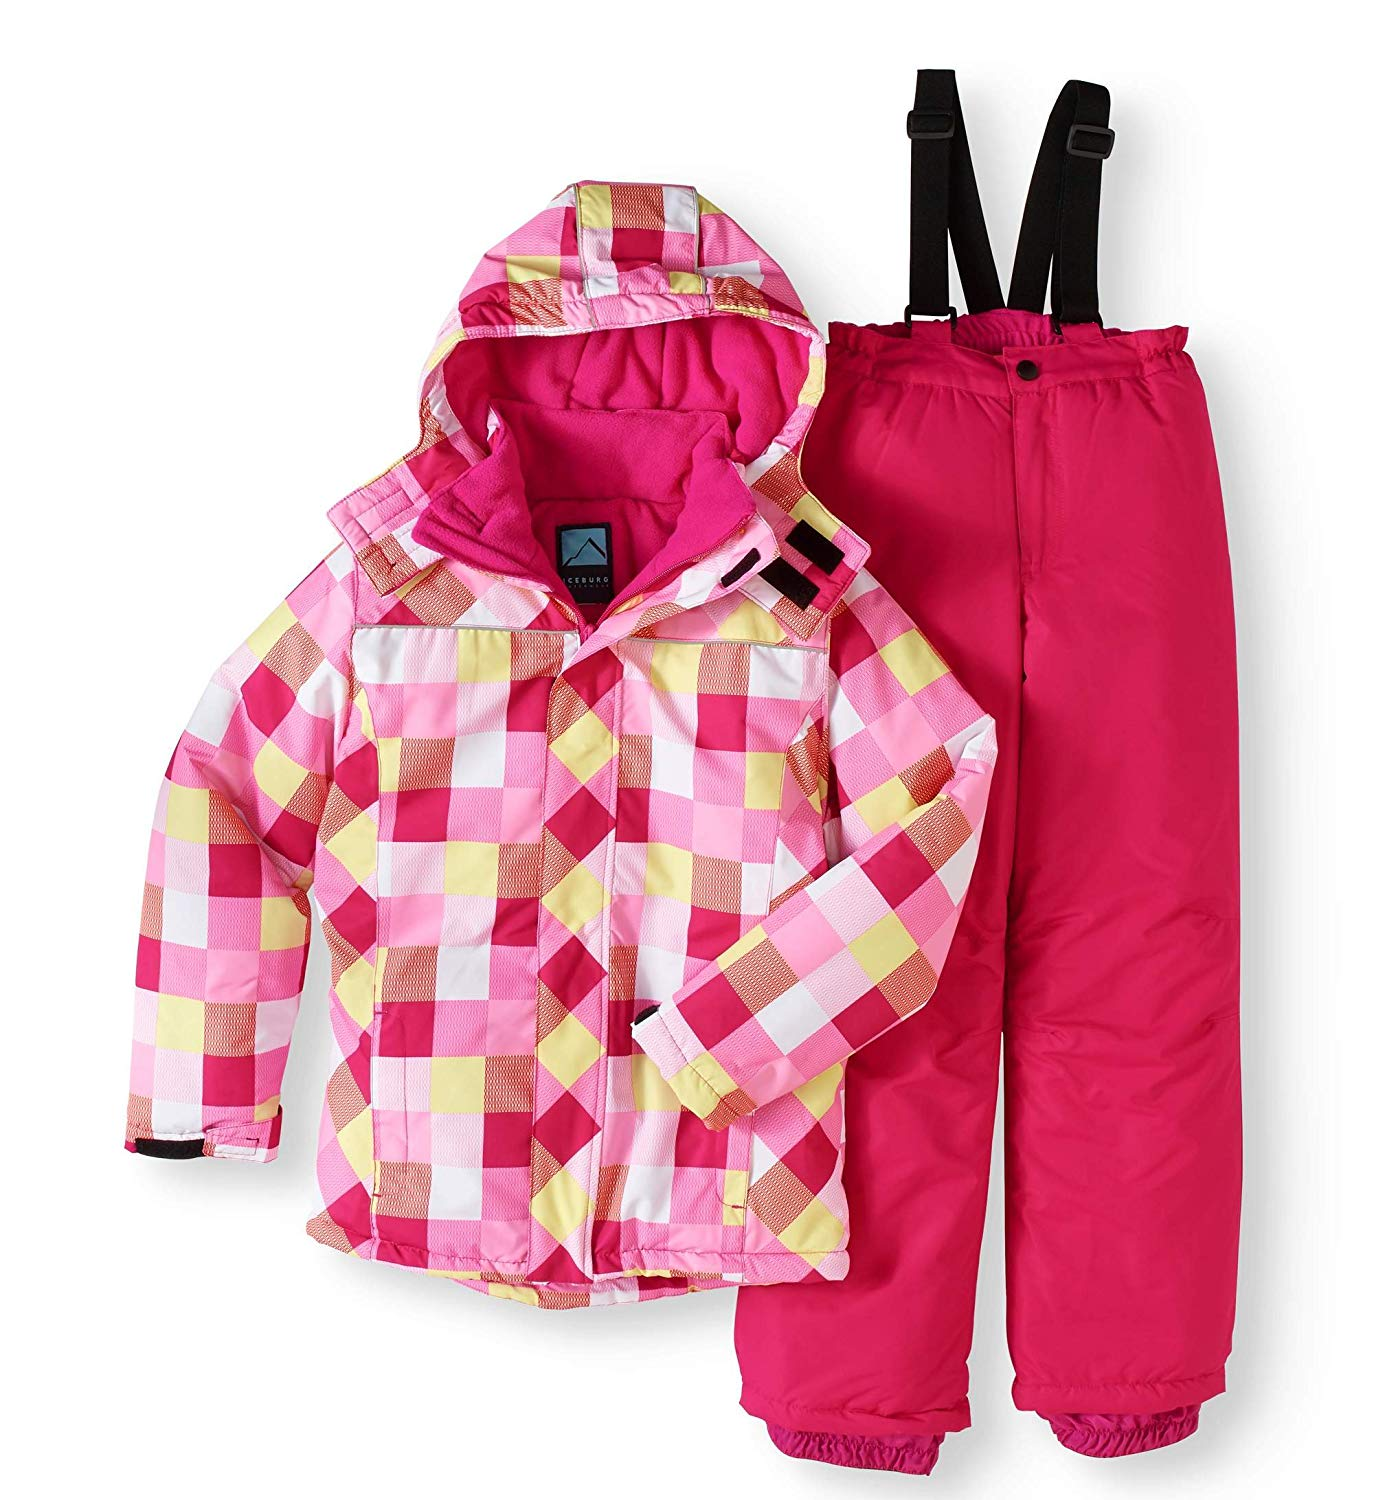 Iceburg Girls' Snow Day Snow Suit with Jacket and Bib 2 Pc Set Size 14/16